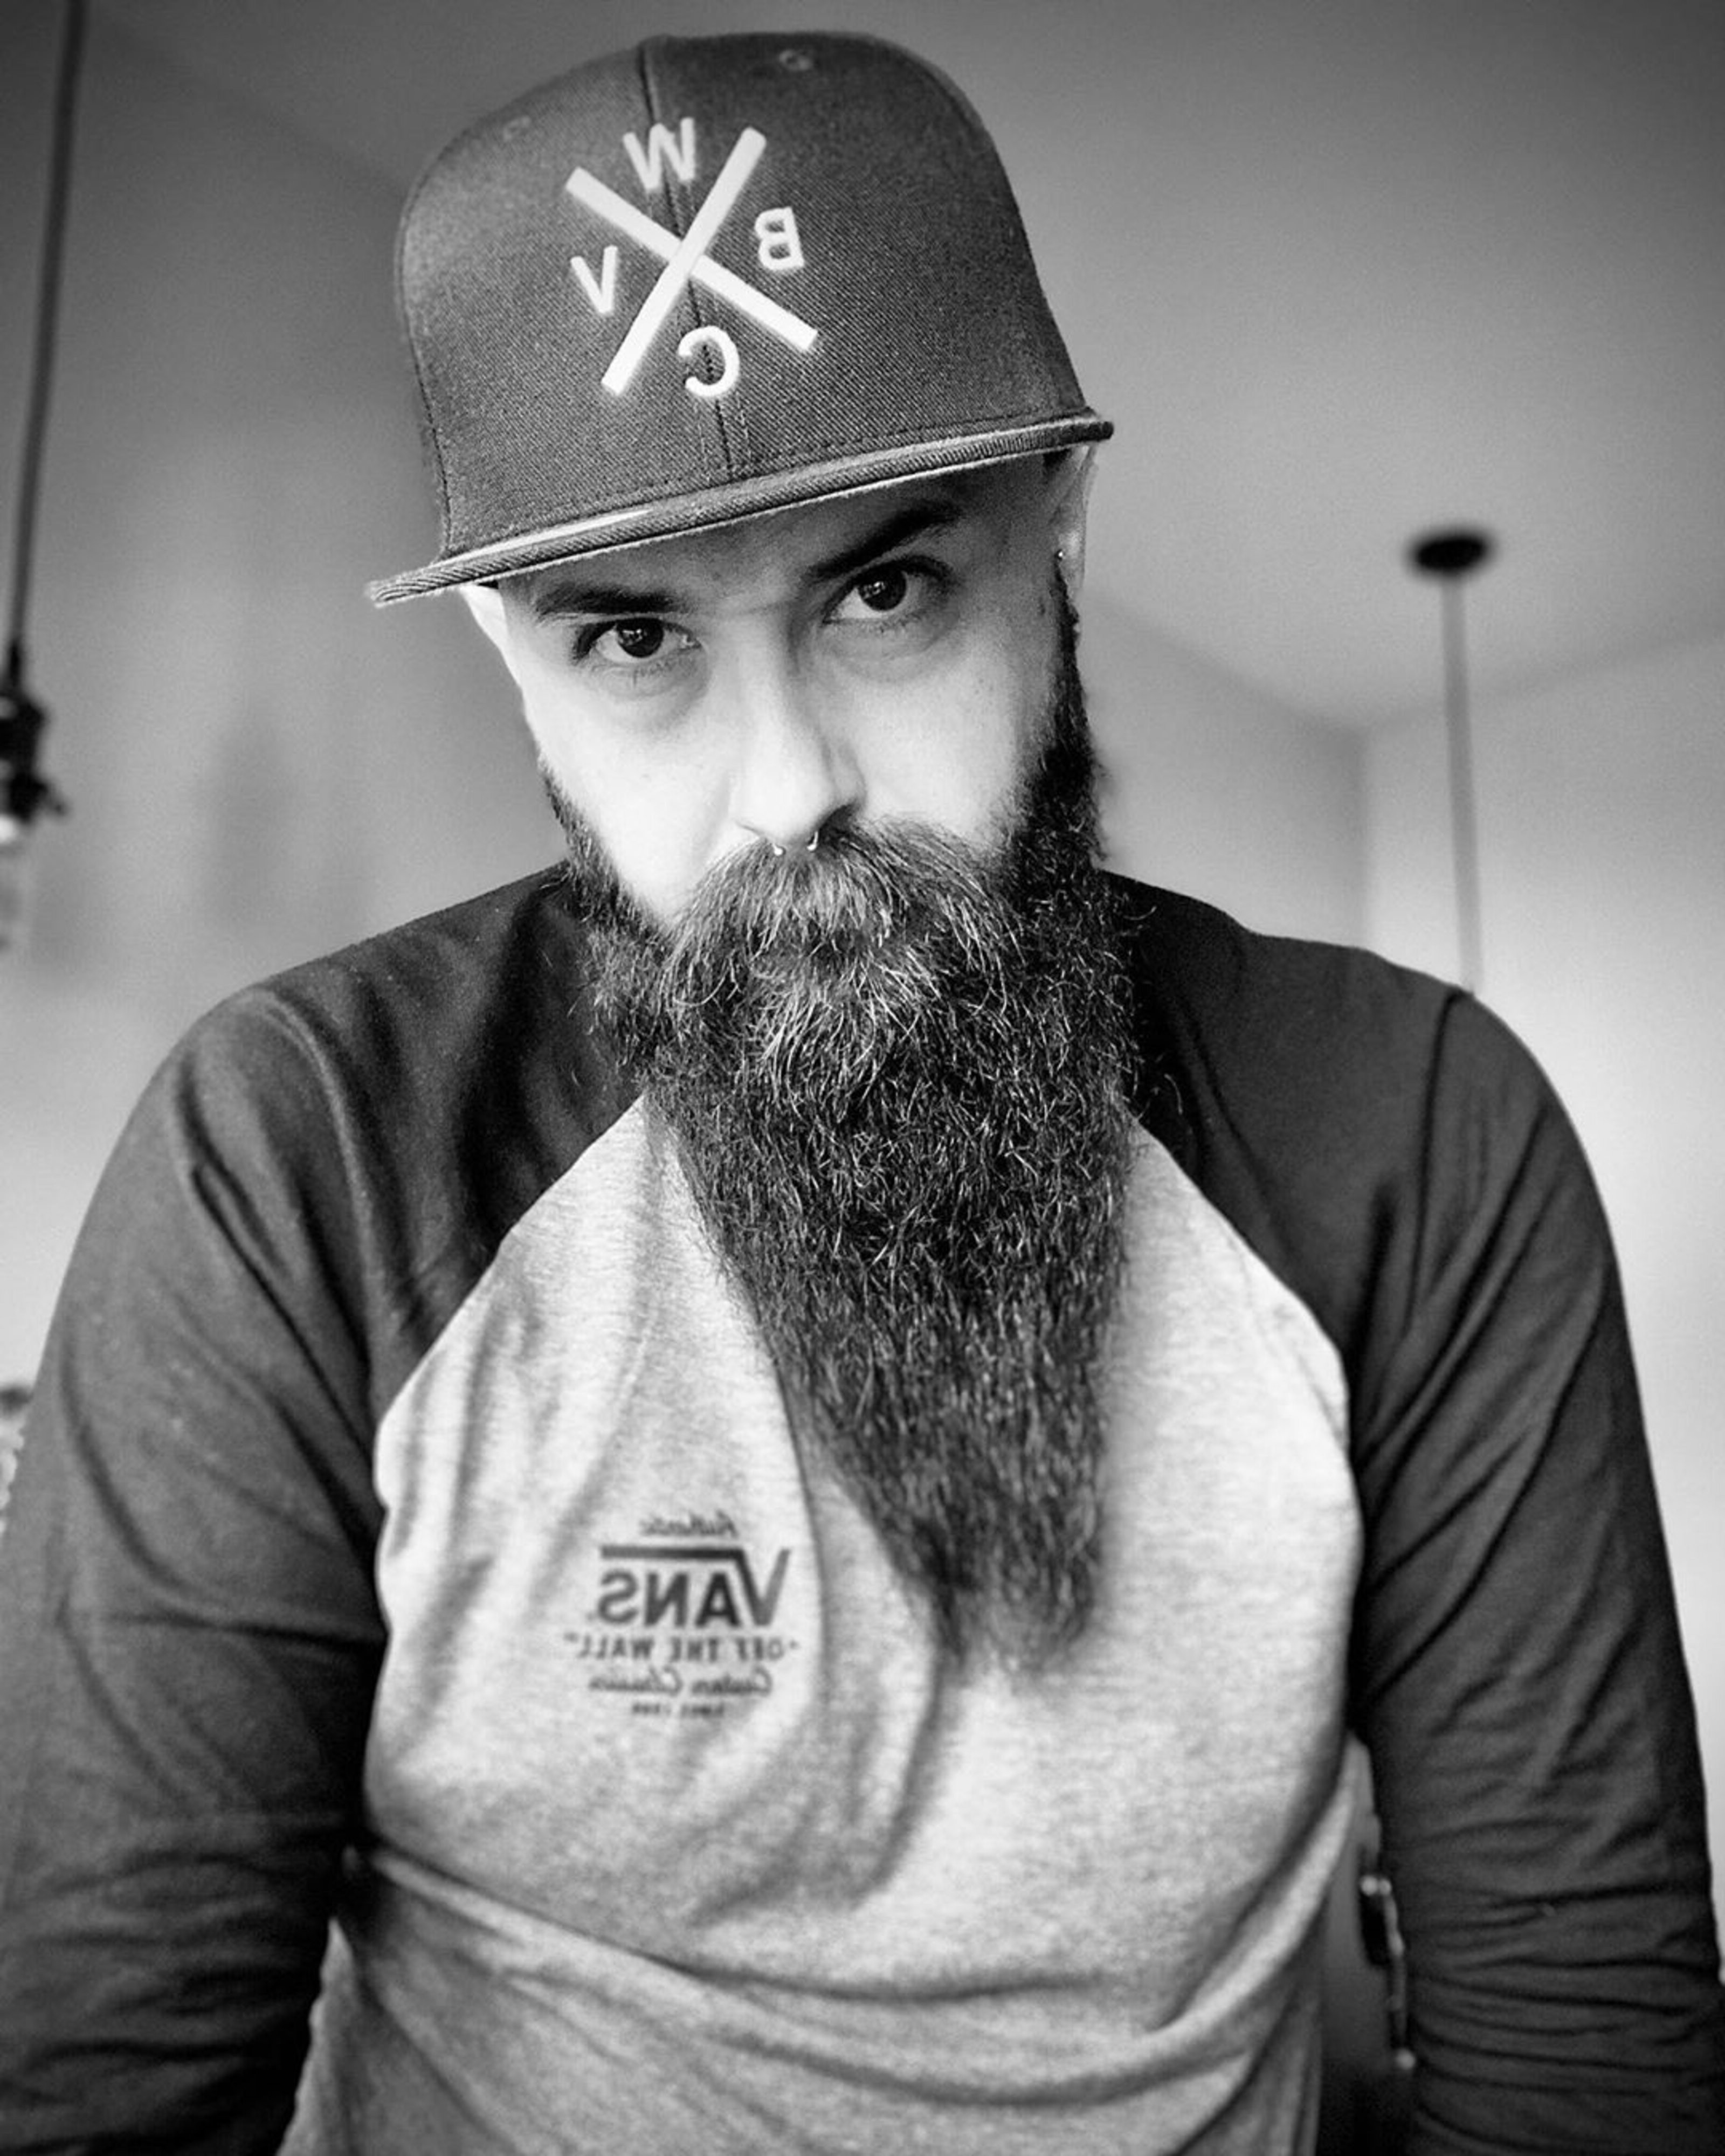 A beard shorter on sides and longer on chin.